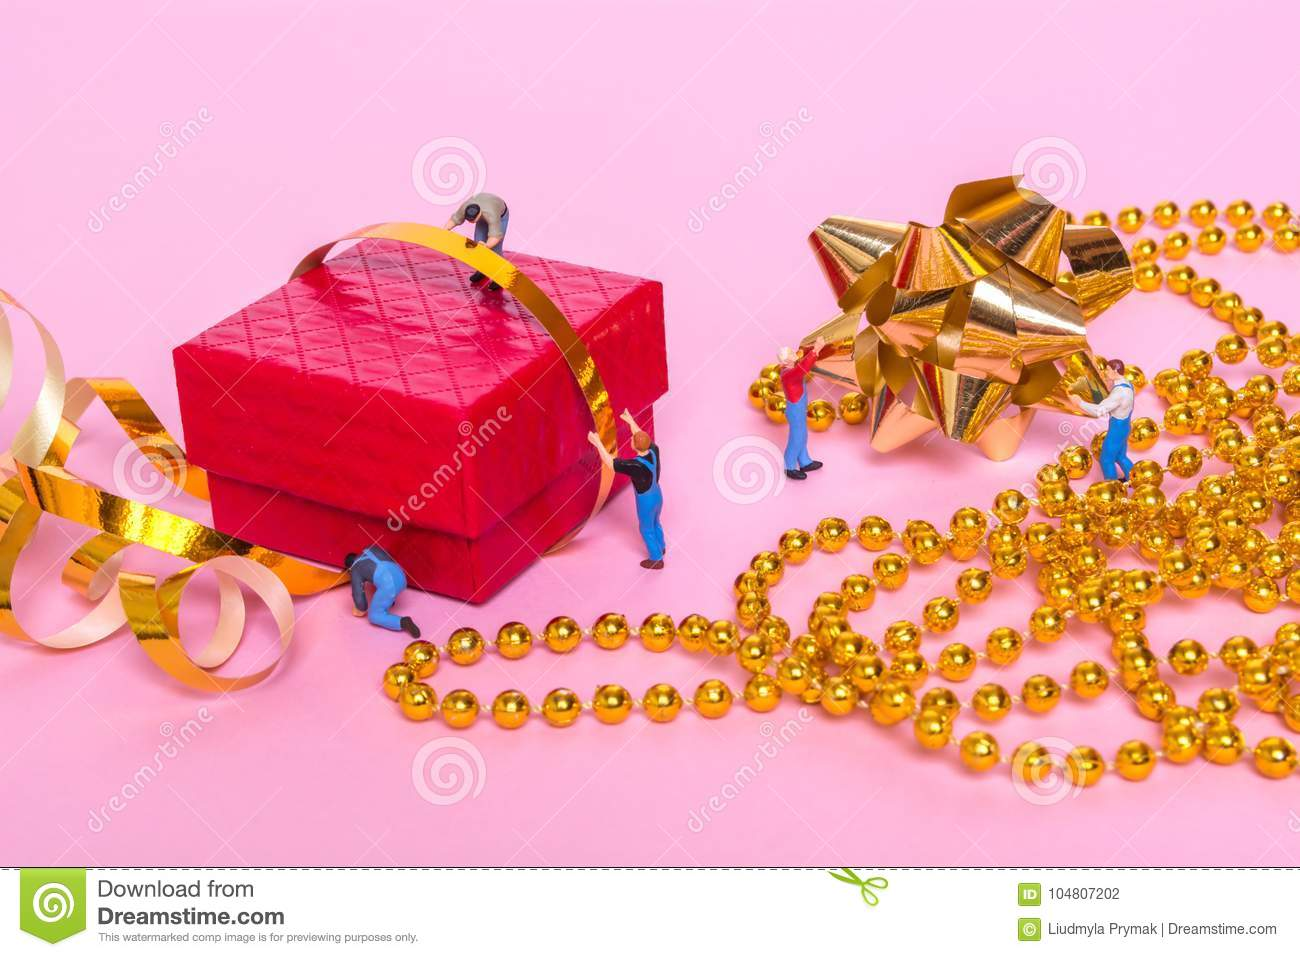 Creative Concept With Miniature People And A Gift Box On A Pink